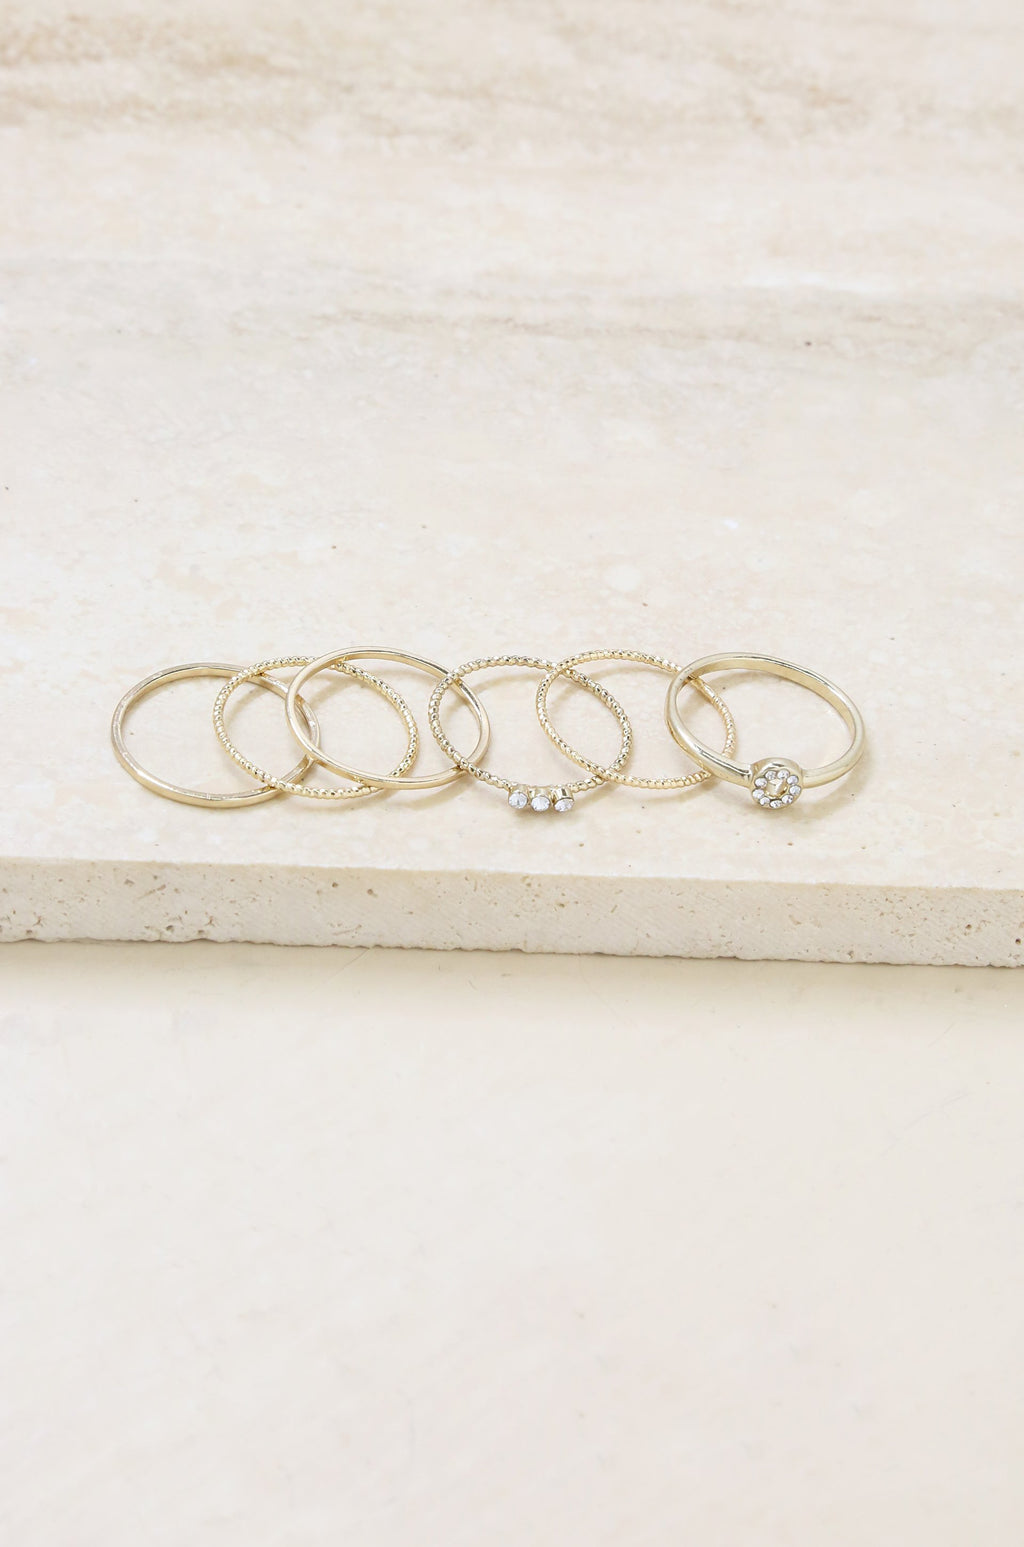 Set of 6 Dainty Gold Stacking Ring Set